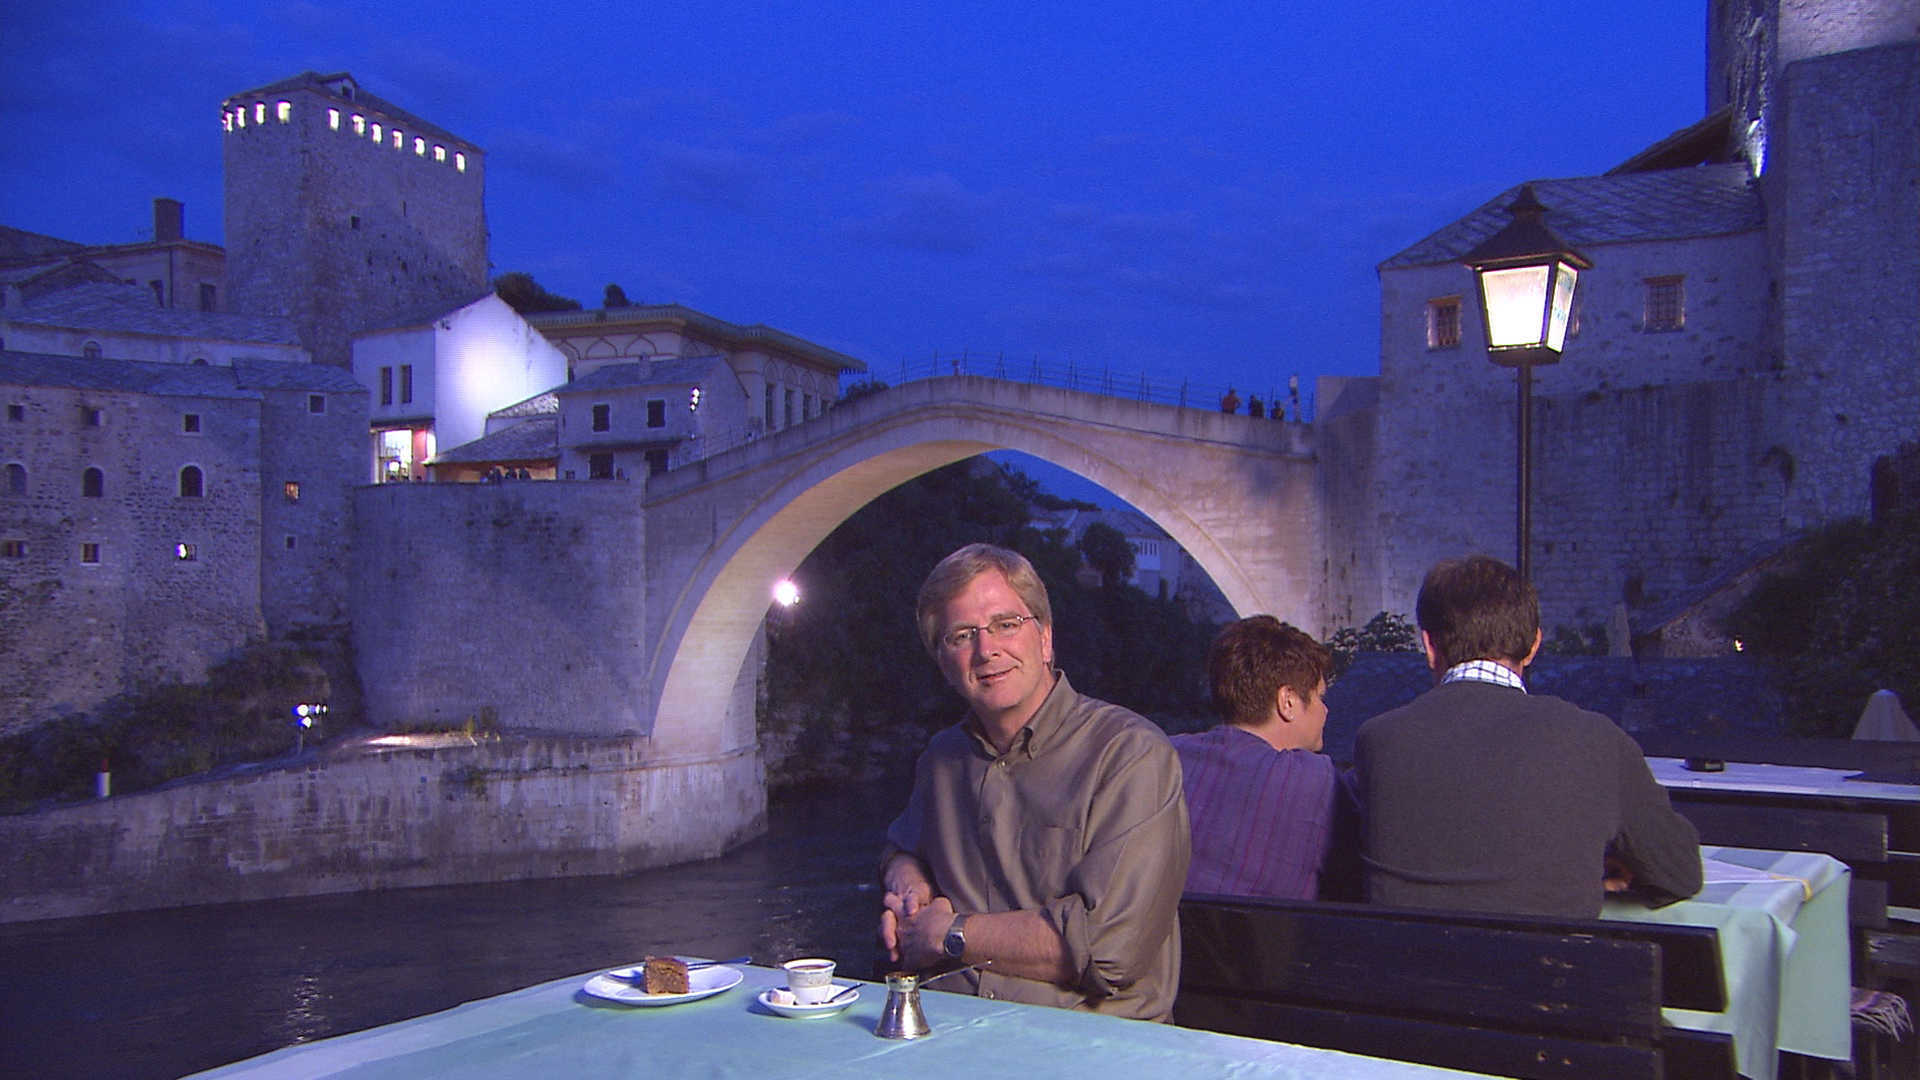 Rick Steves under the Mostar Bridge at night